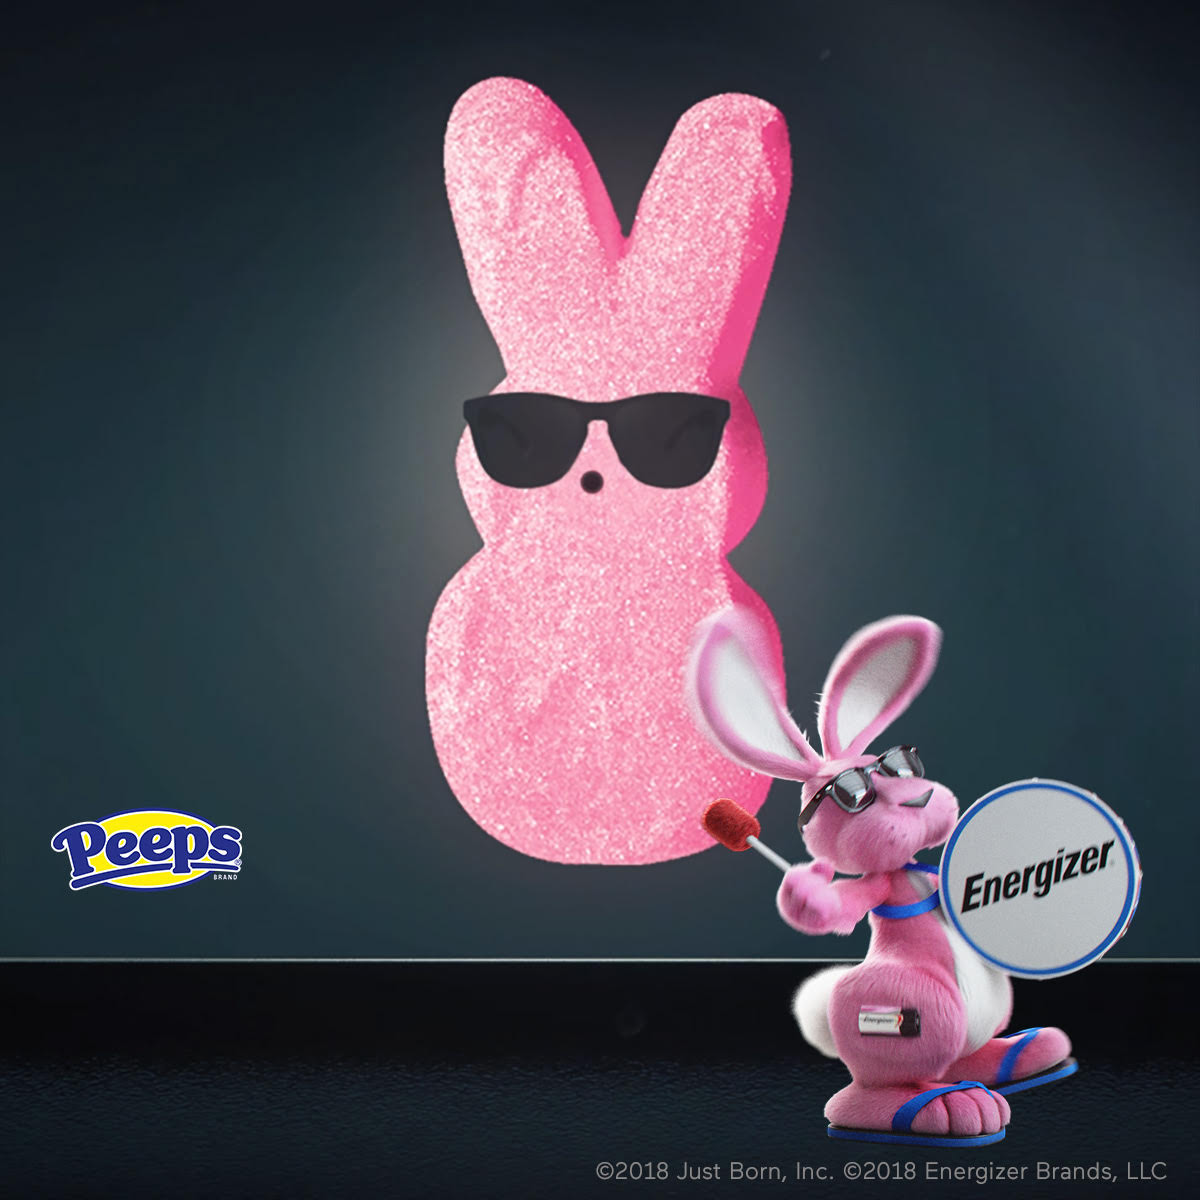 This new creative brand vision has made the pink PEEPS® bunnies kind of look like… the Energizer Bunny™.